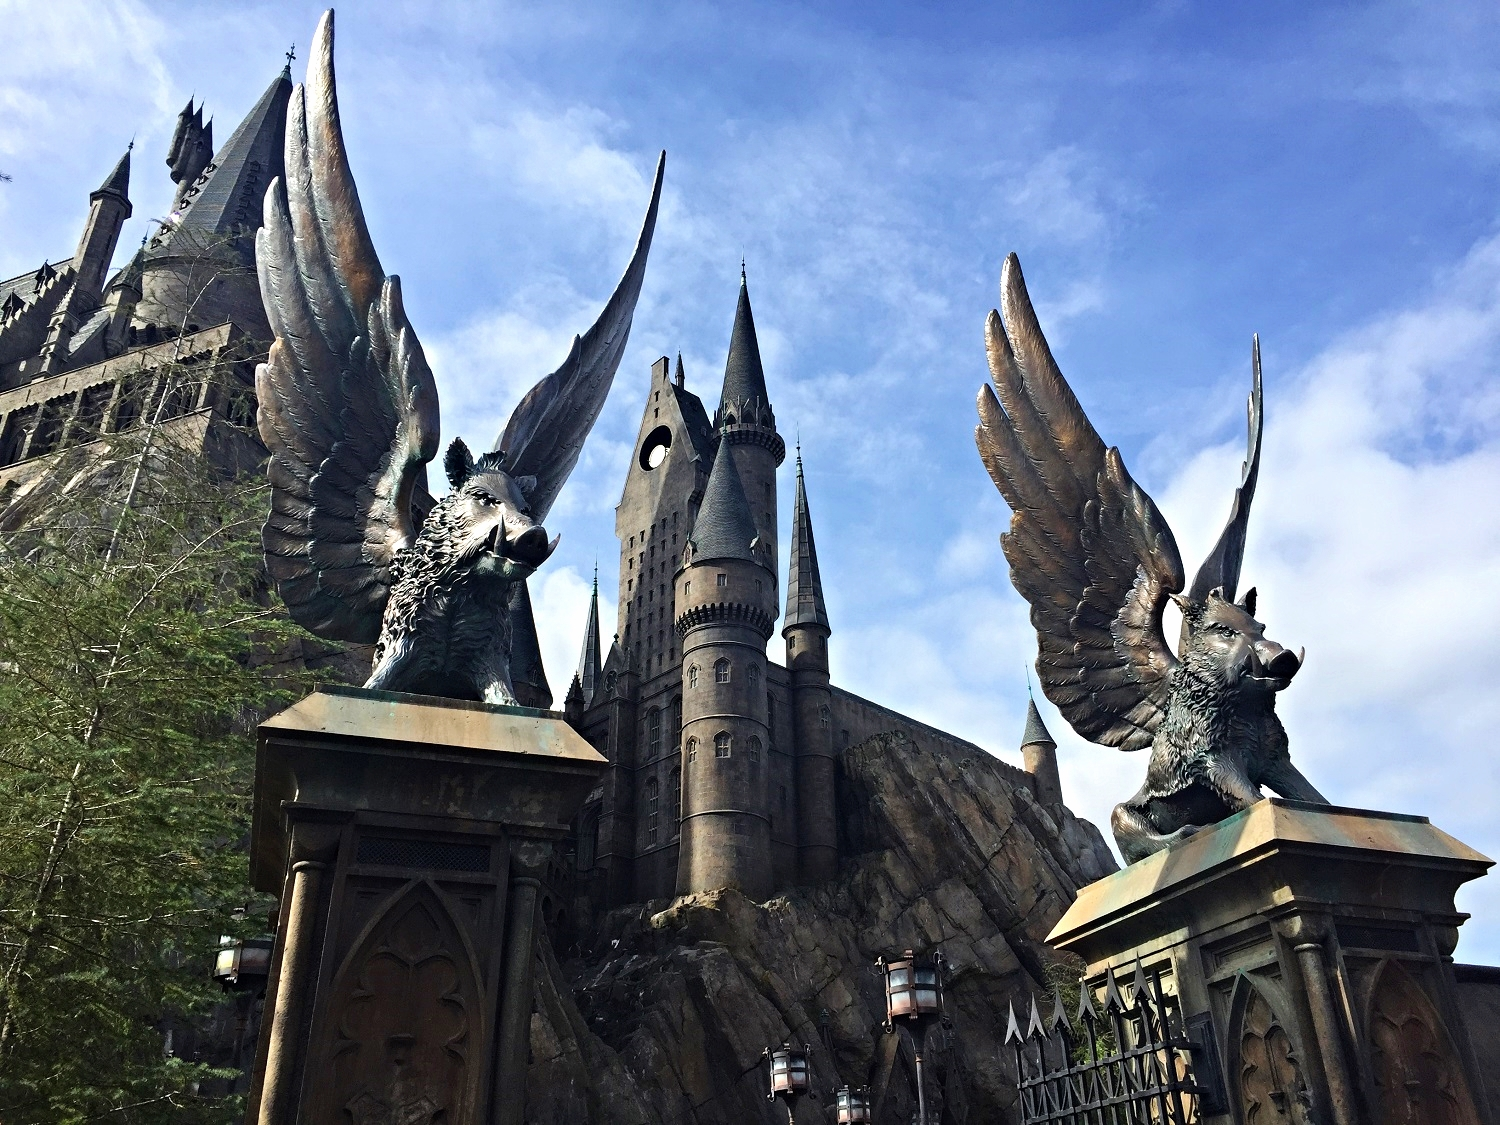 Take the Castle Tour Only line to explore Hogwarts at your own pace.